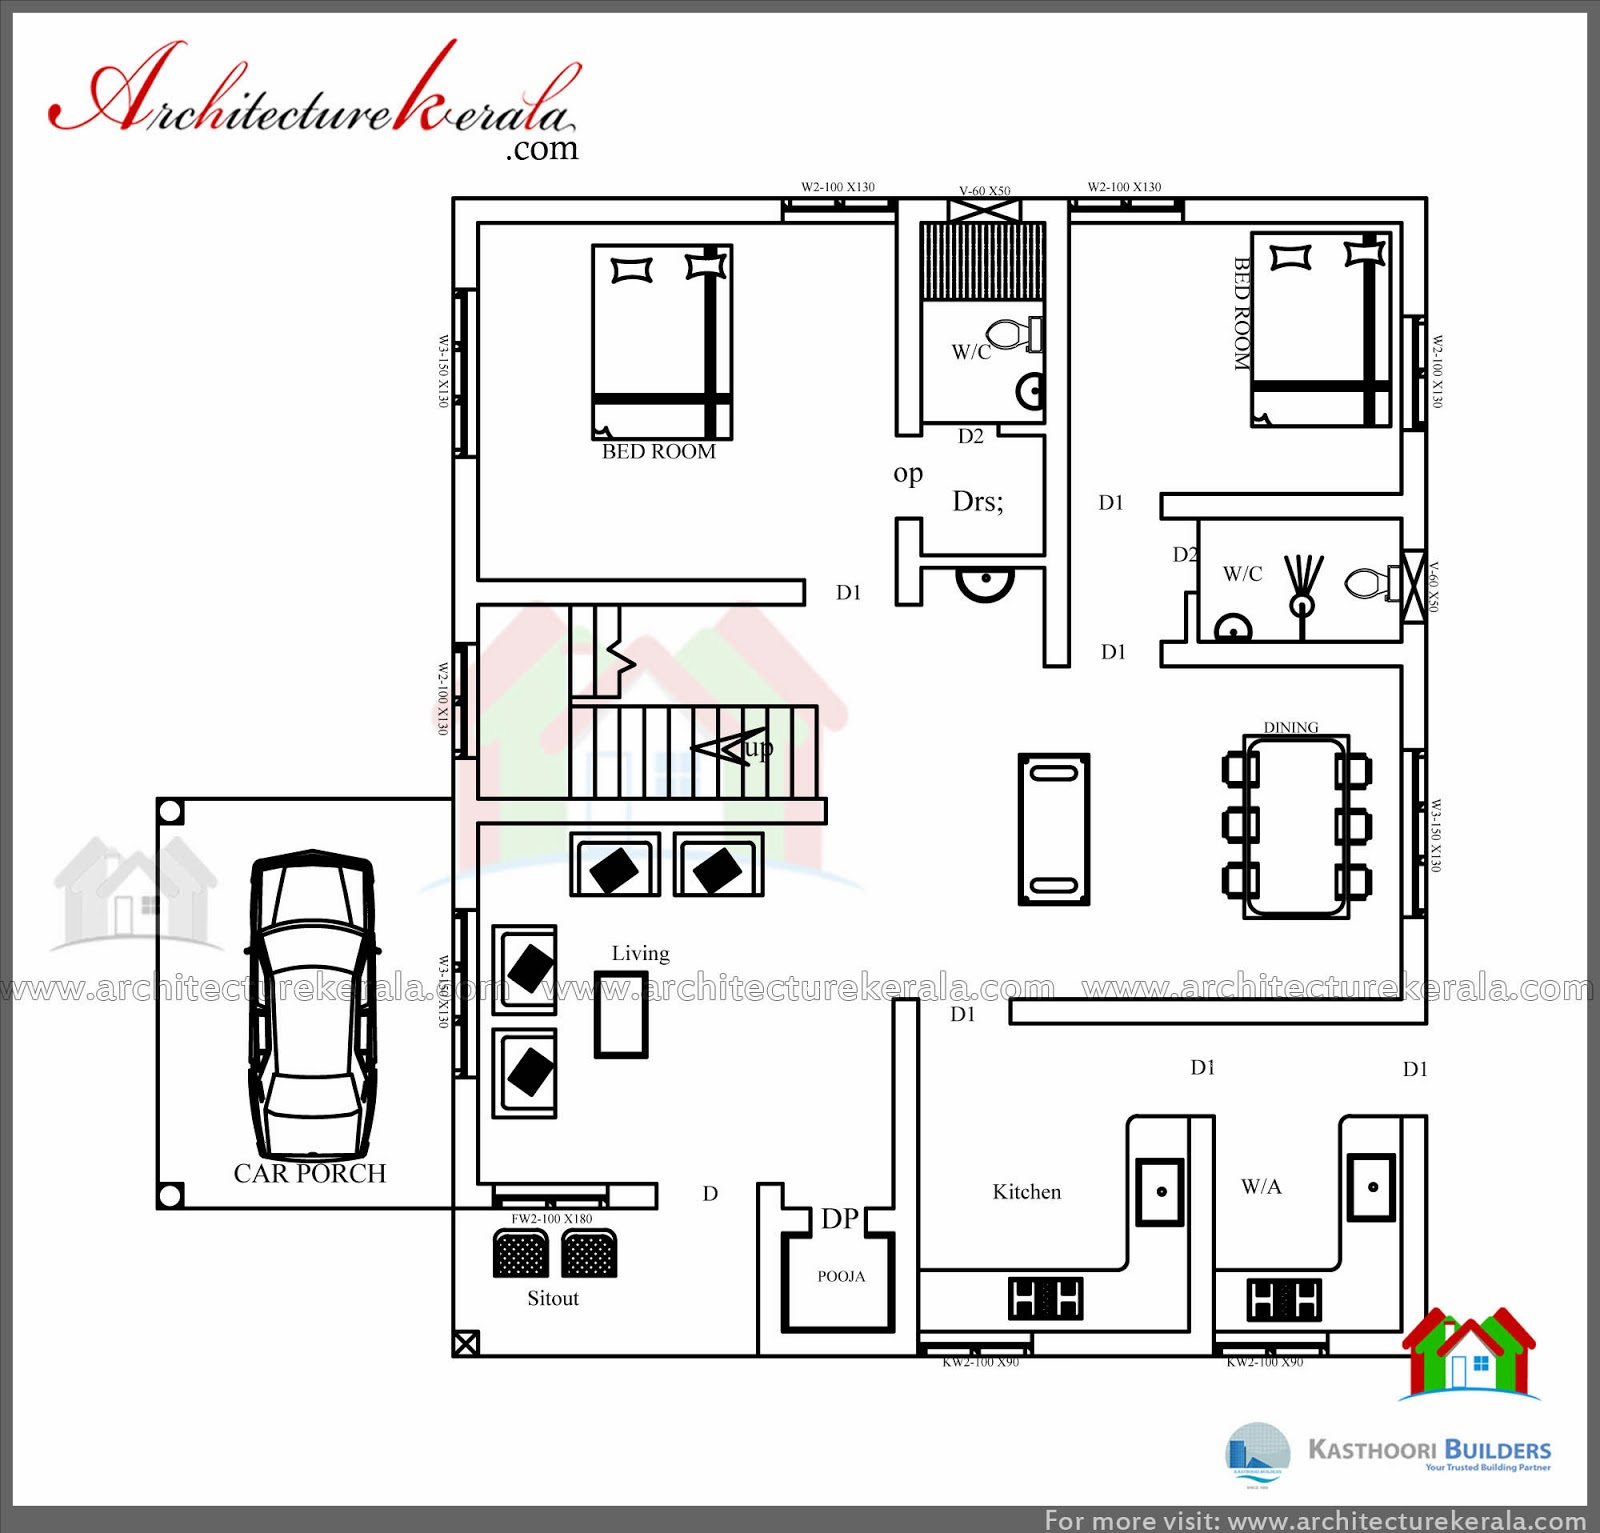 Low cost 3 bedroom kerala house plan with elevation free for Cost of house plans